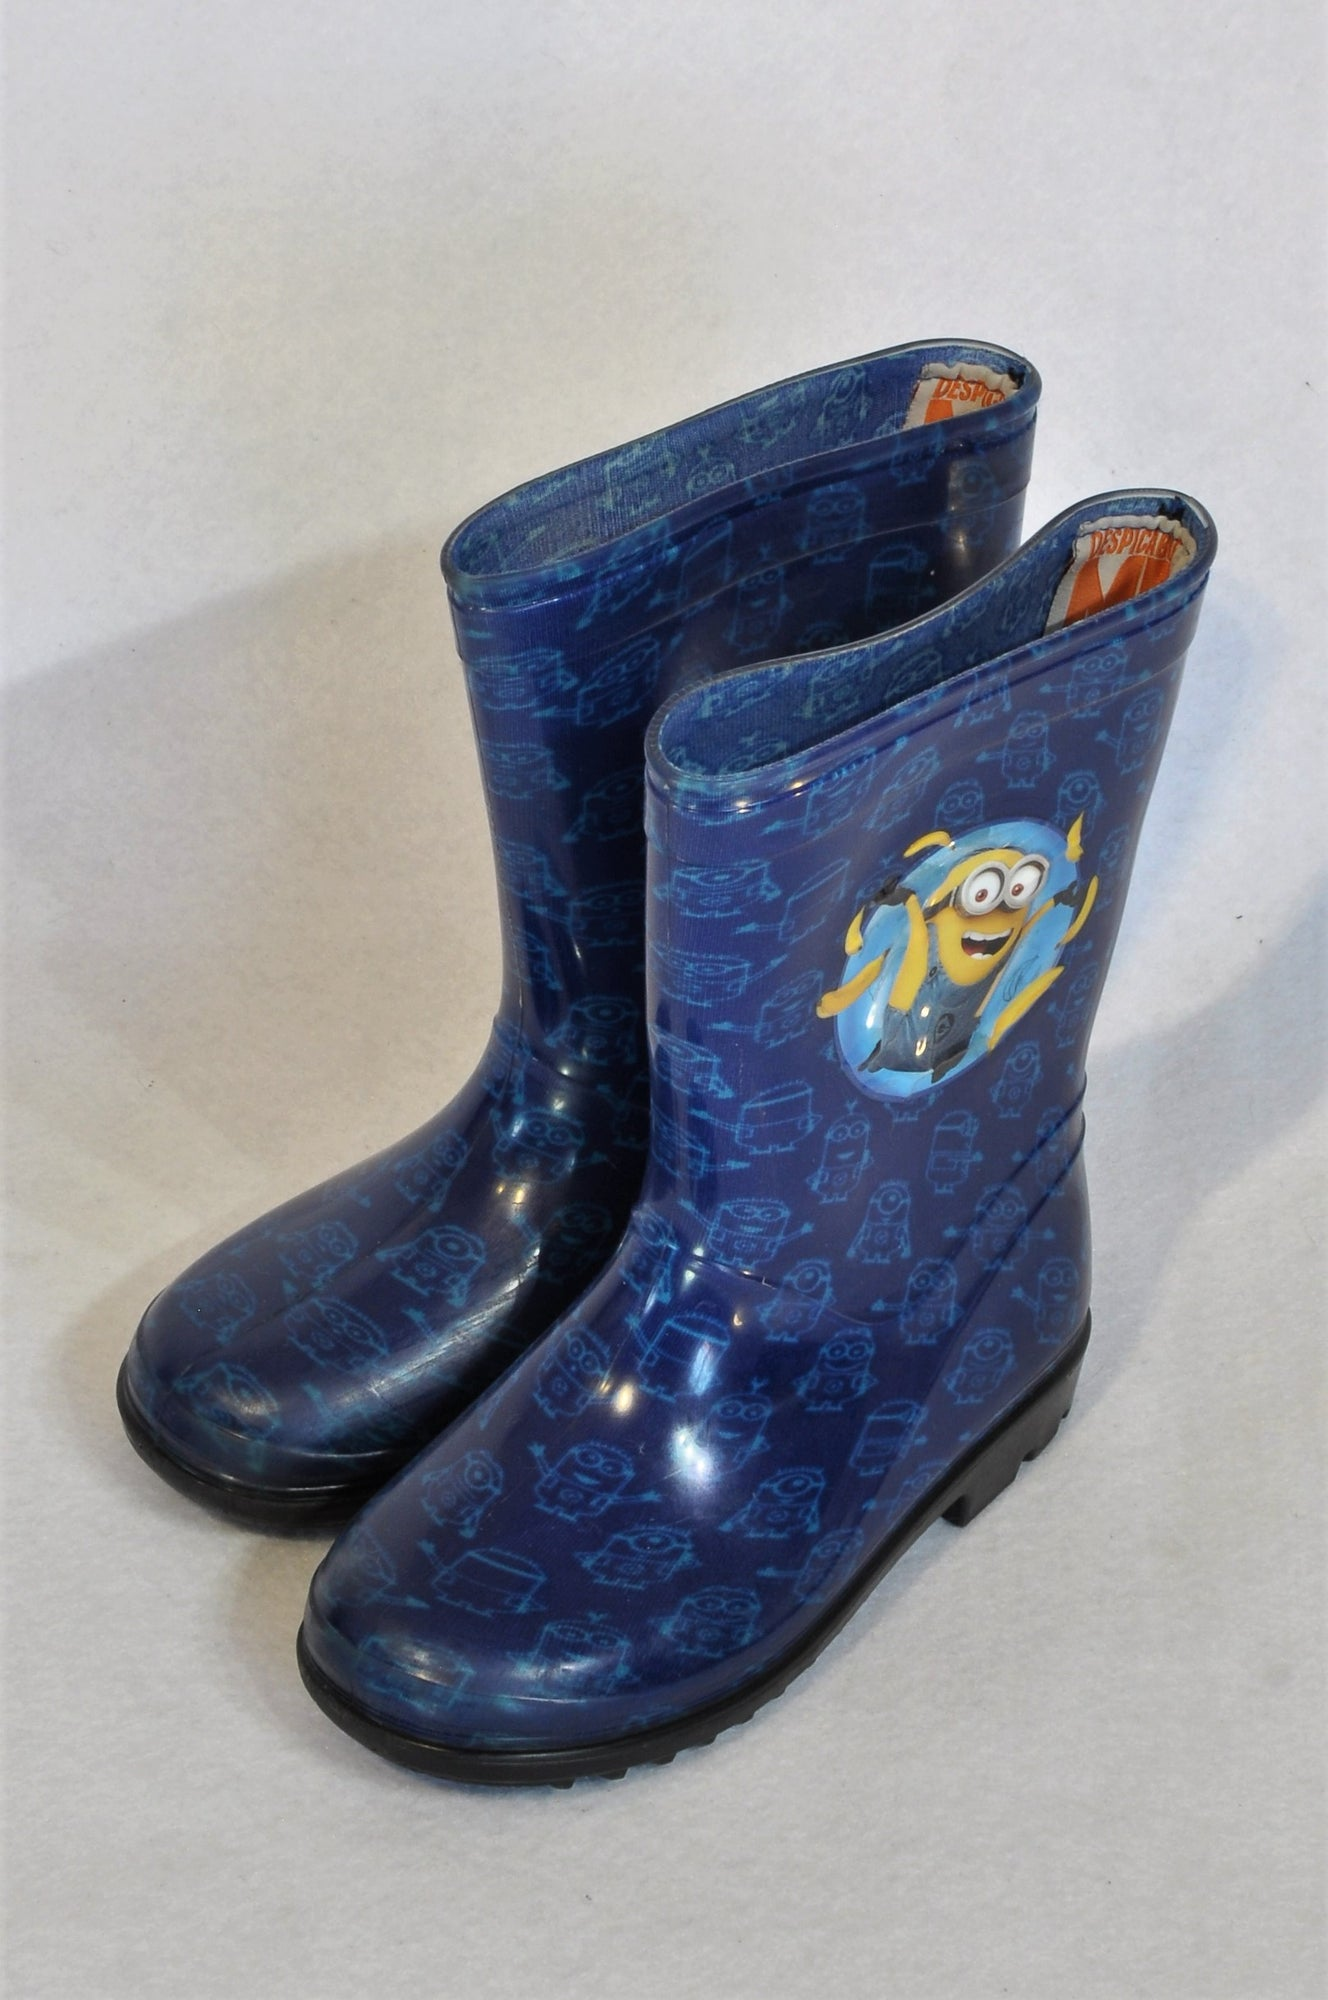 Despicable Me Size 10 Blue Minions Rain Boots Boys 3-5 years